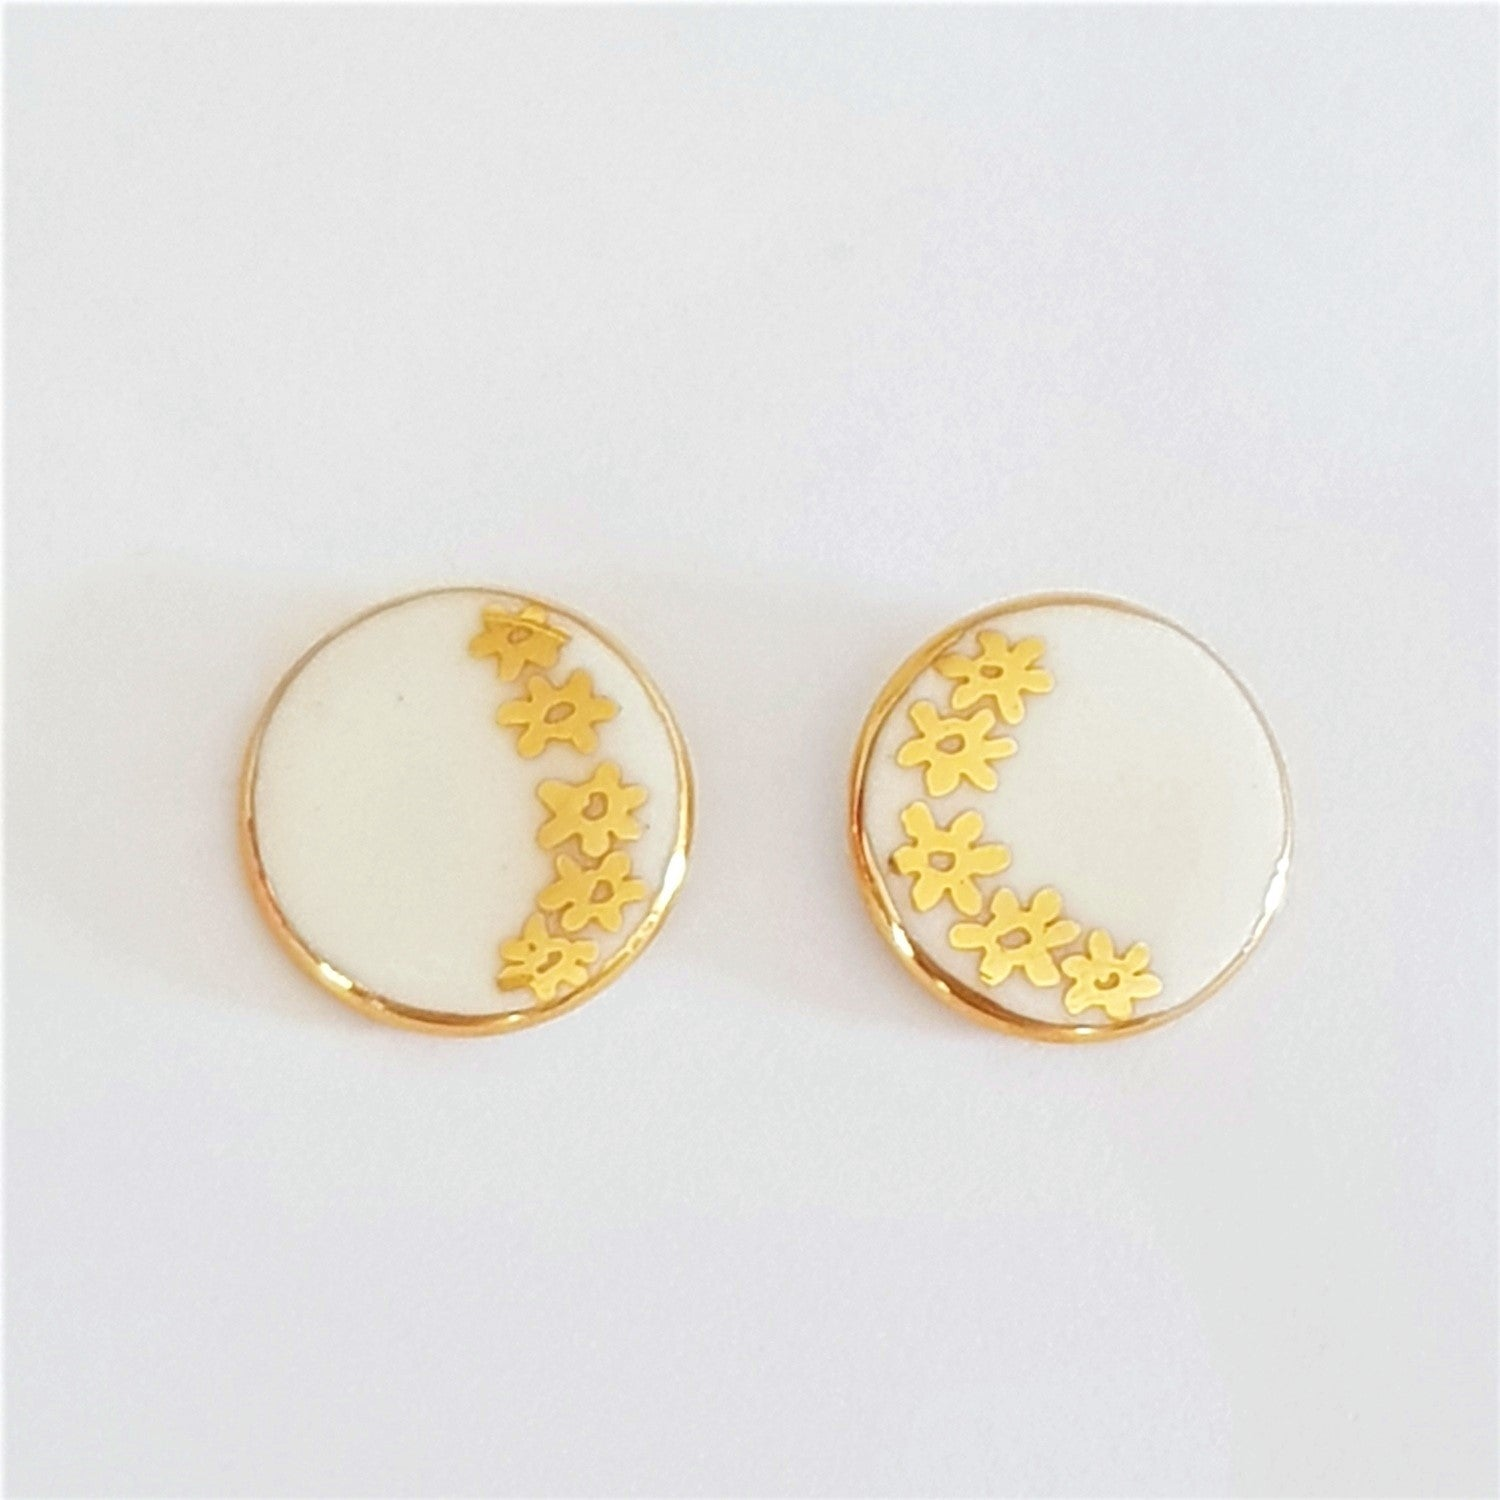 Round stud earrings in white with gold daisies